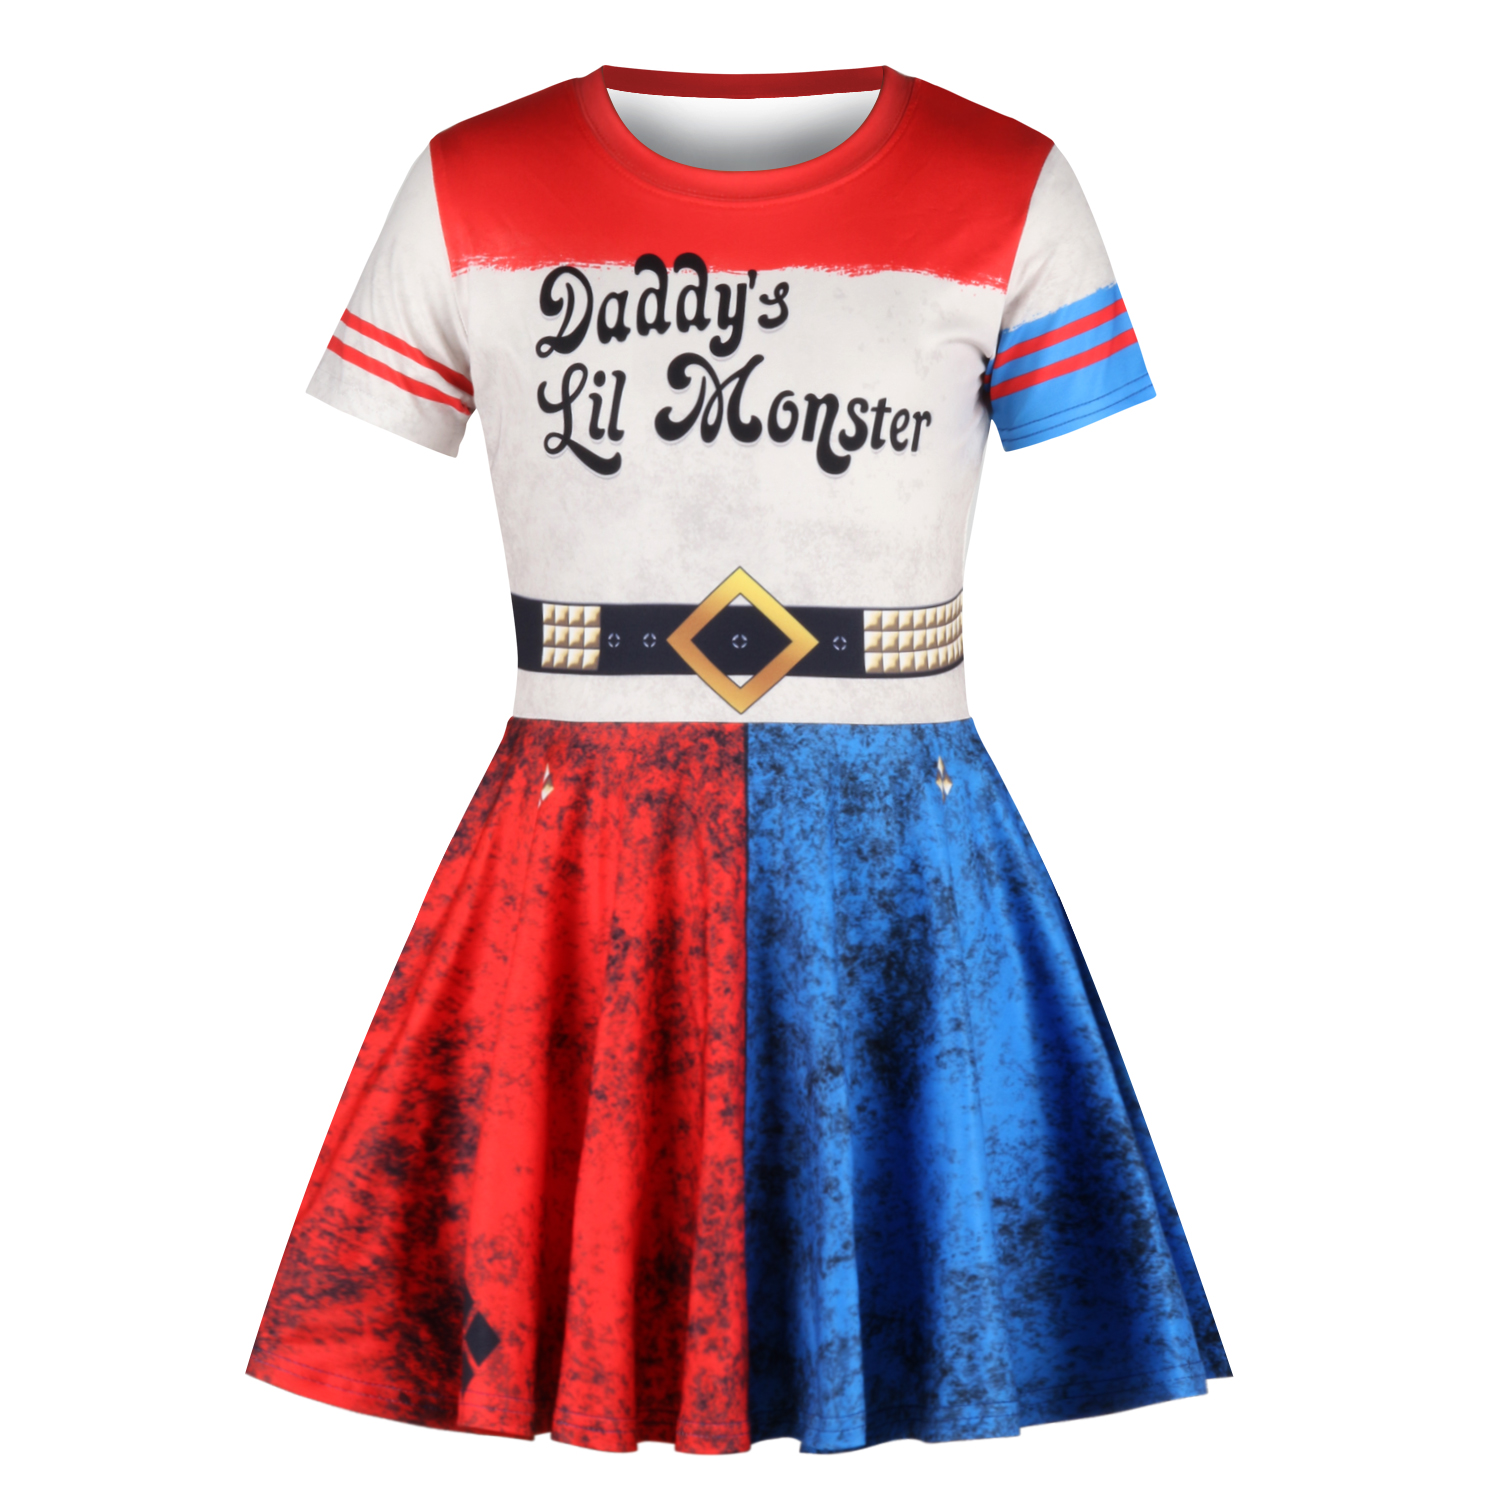 Harley Quinn Dress Clown Cosplay Suicide Squad 3D Print Girls Dress Kids Children Costume Cute Party Princess Dresses Vestidos in Dresses from Mother Kids